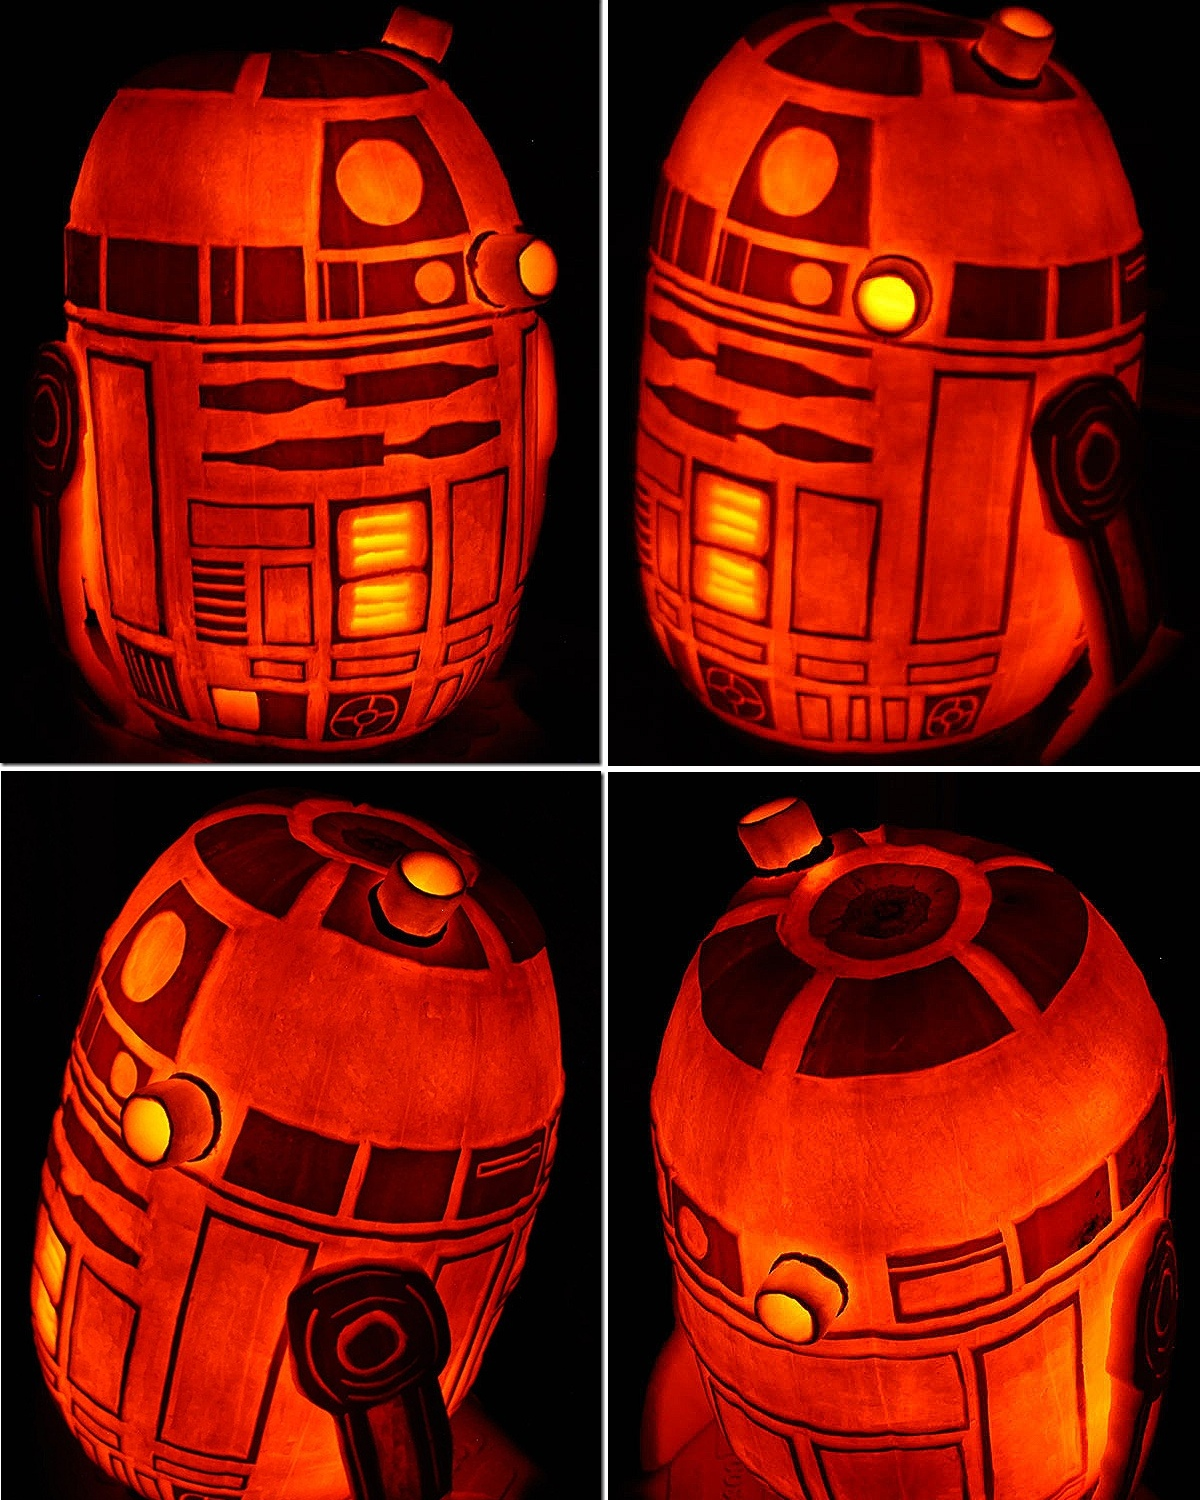 20 cool halloween carved pumpkins cool things blog for The coolest pumpkin carvings